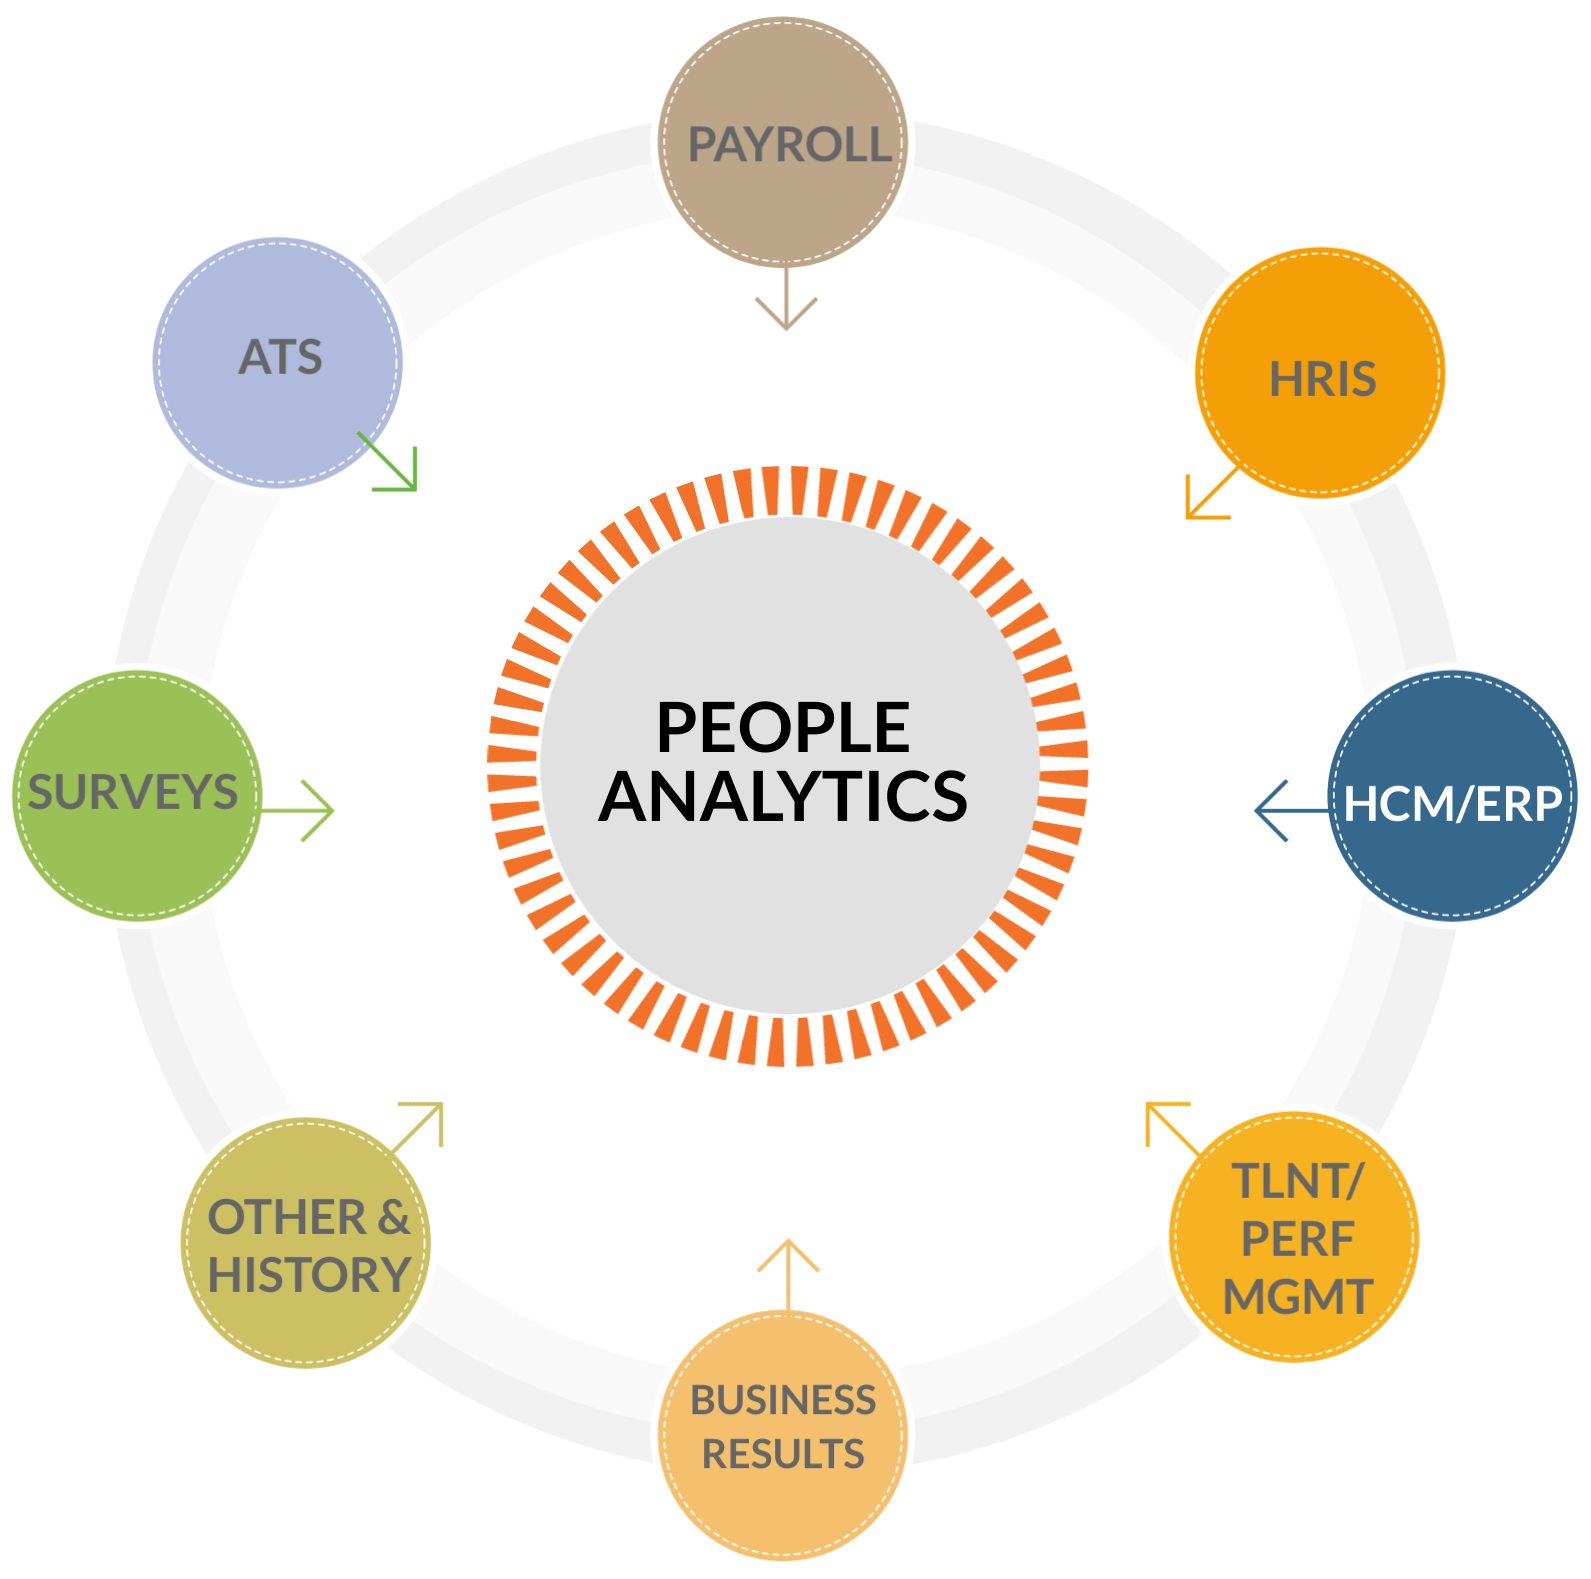 People analytics pureplay capabilities